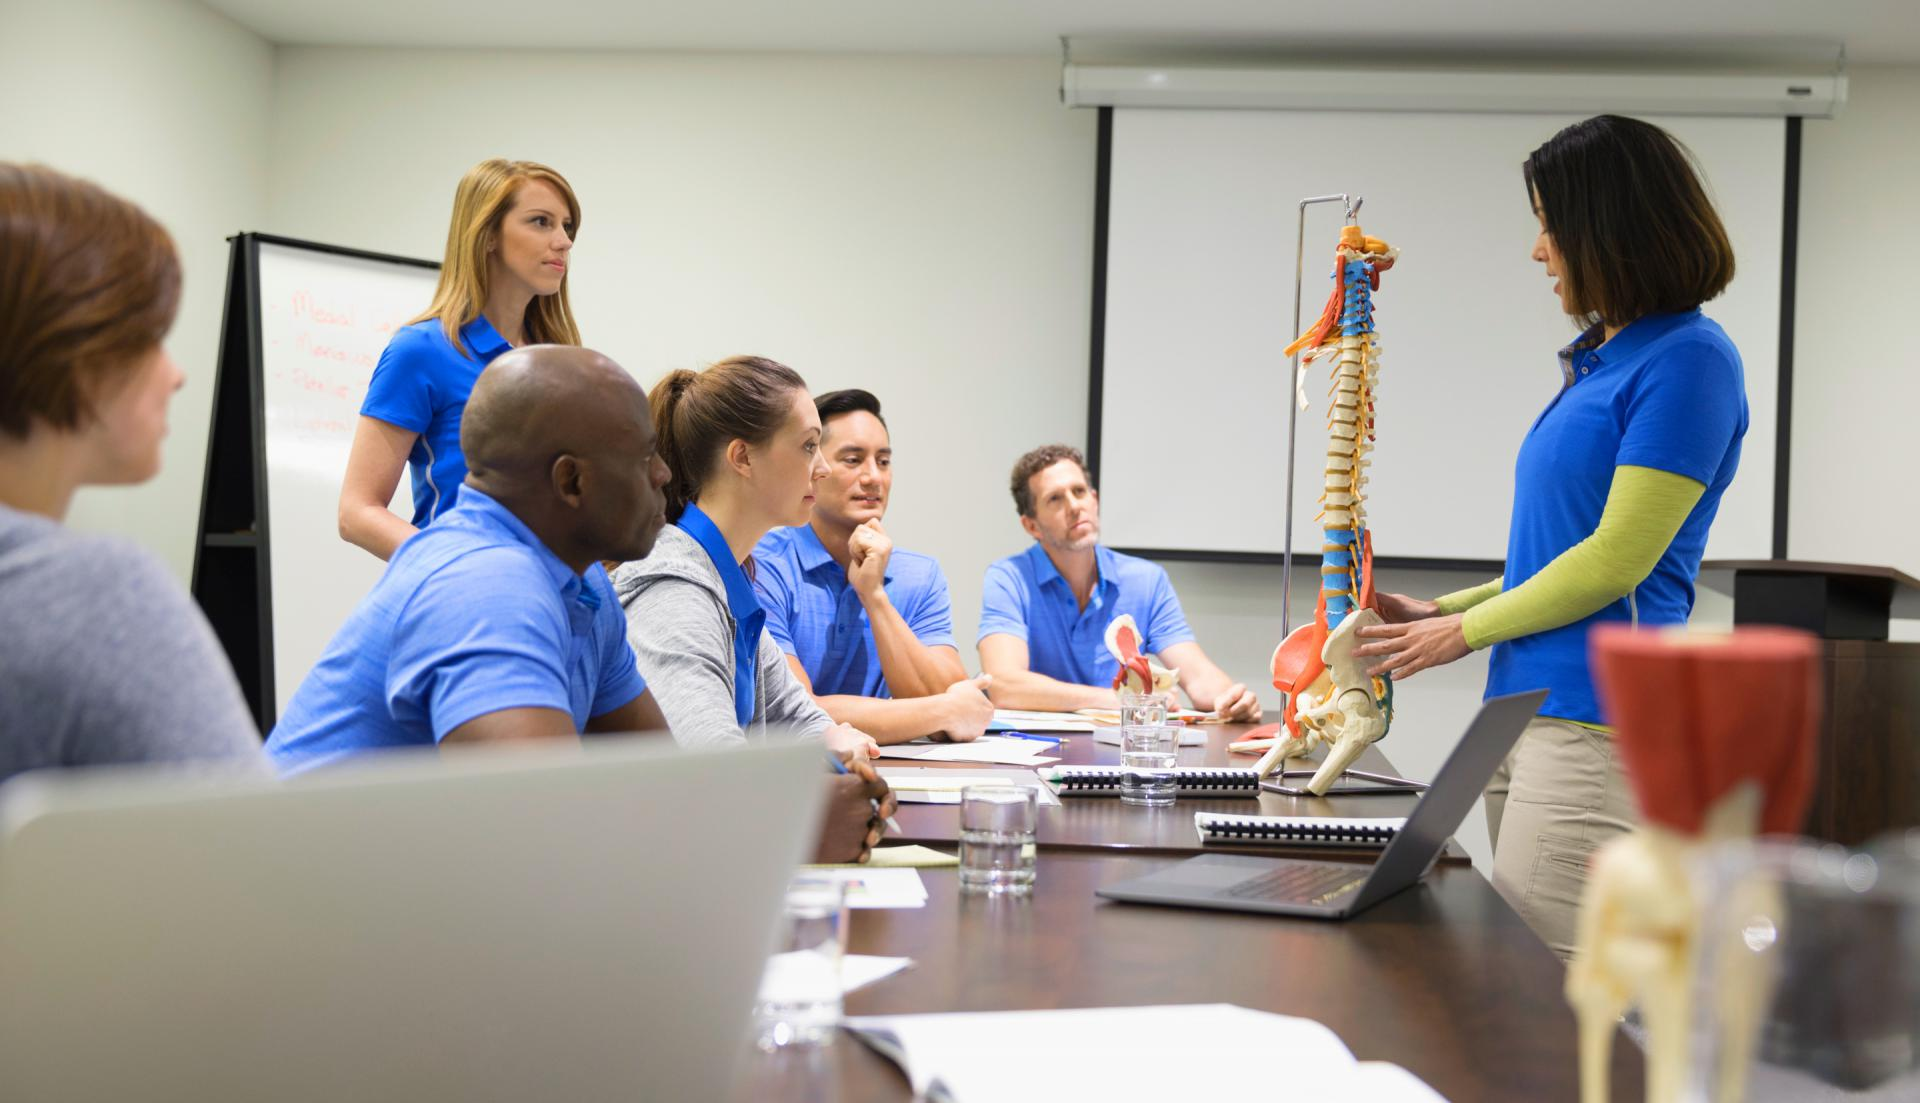 Professor and students in class looking at a model of a spine.